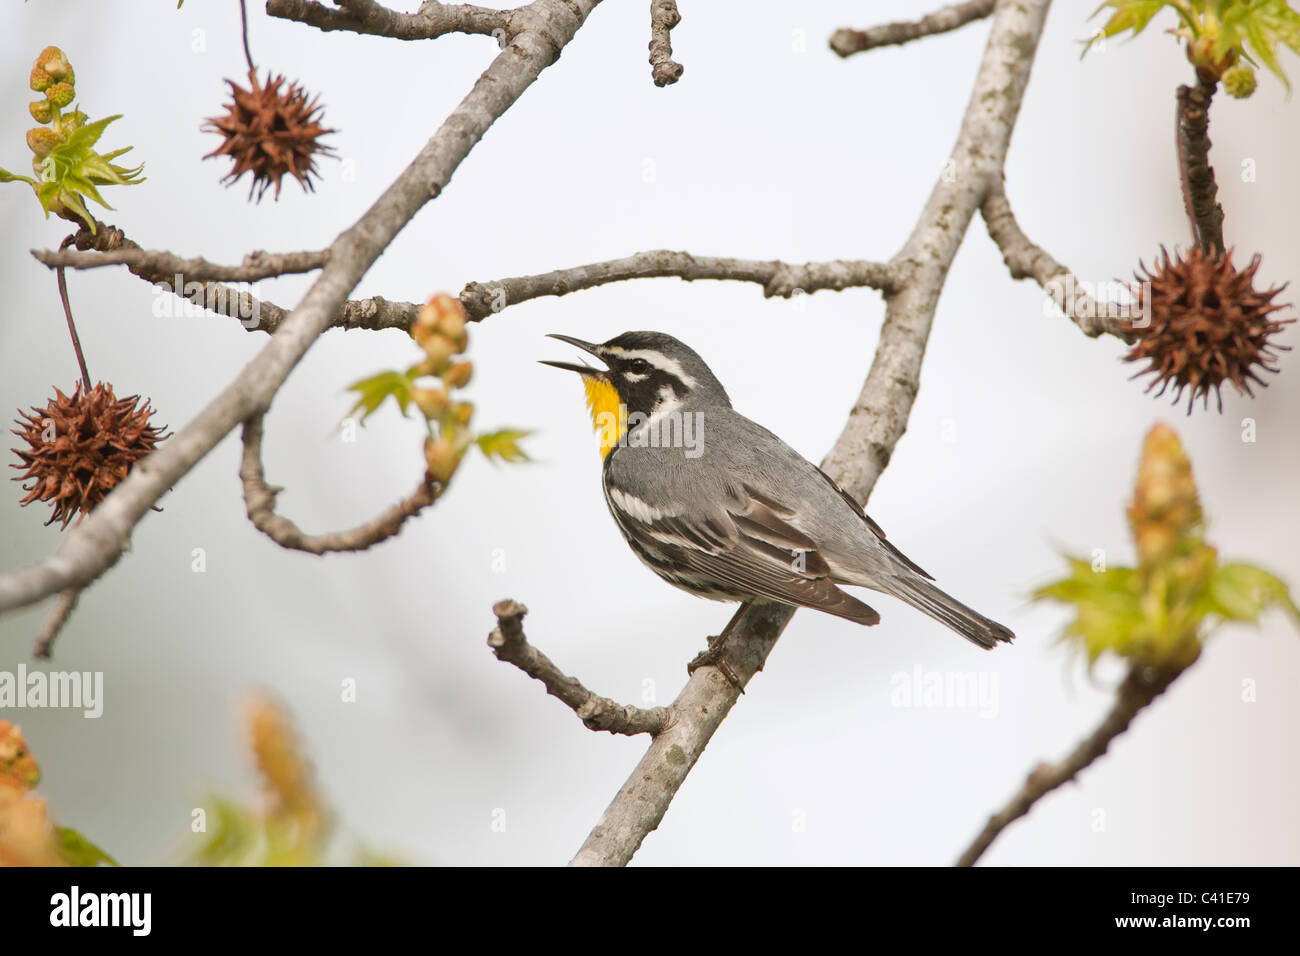 Yellow-throated Warbler singing in Sweetgum Tree - Stock Image